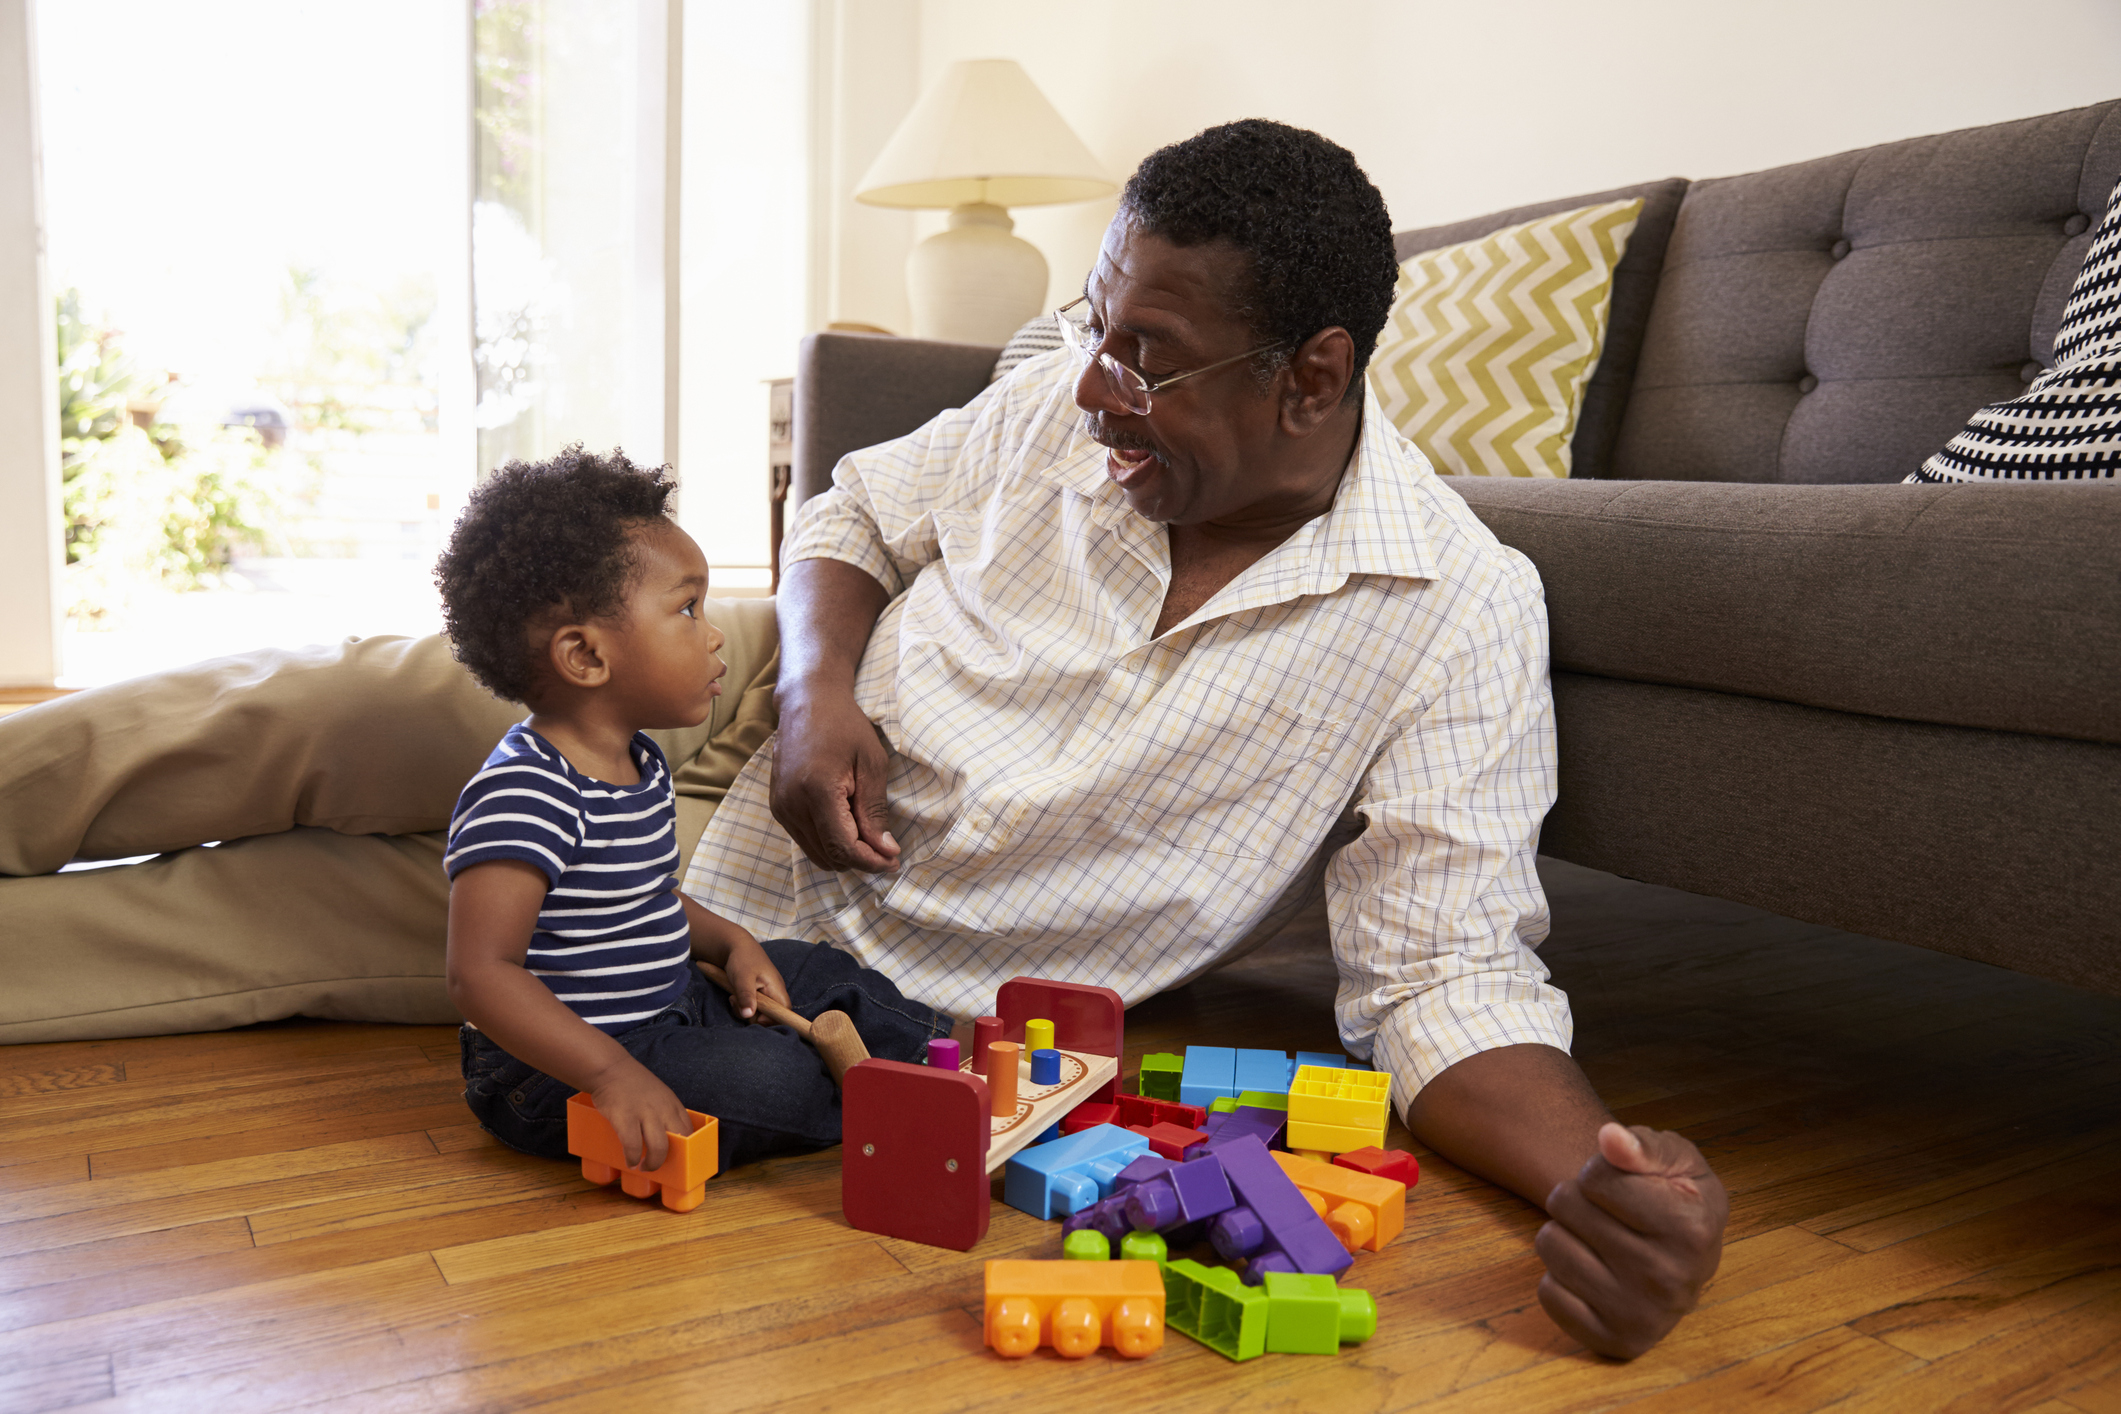 Adult caregiver sits on floor with toddler boy playing with blocks